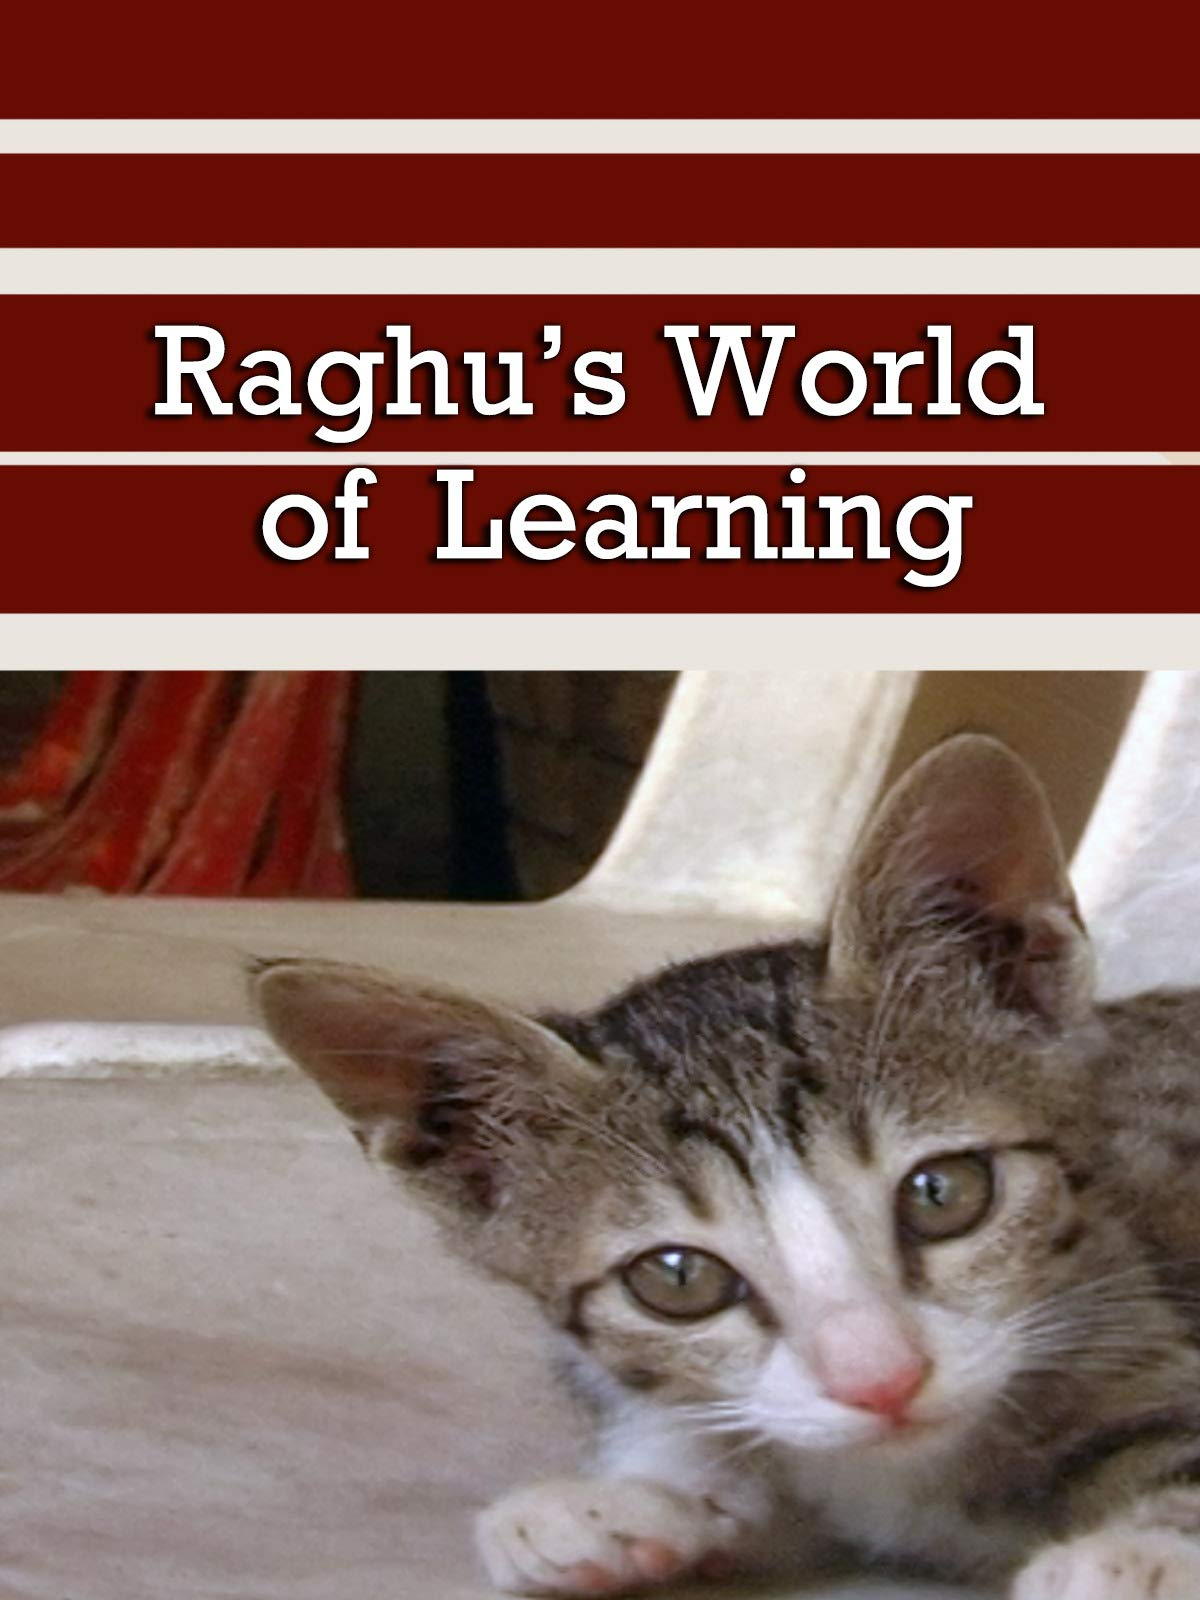 Raghu's World of Learning